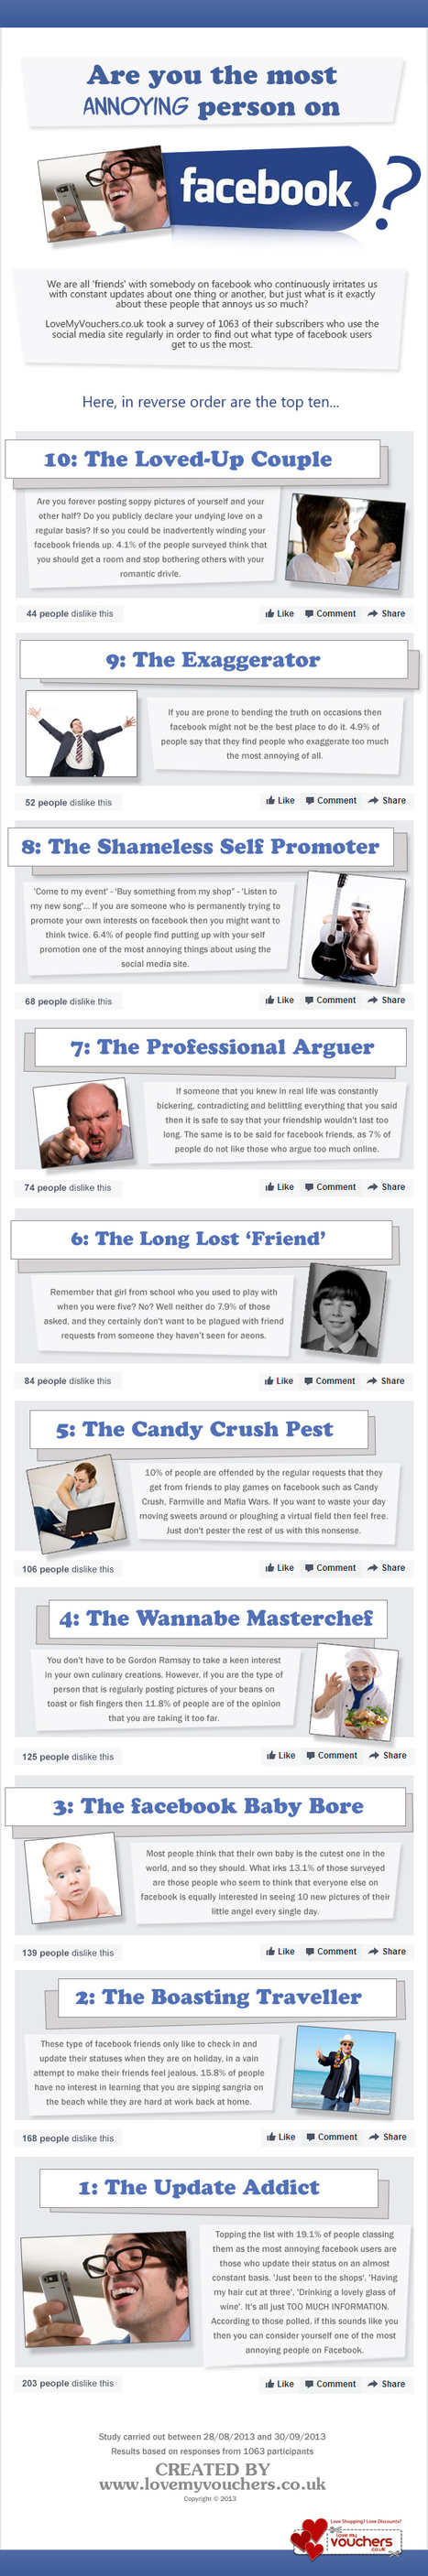 The 10 Most Annoying Types of People on Facebook - Jeffbullas's Blog | Social Media | Scoop.it